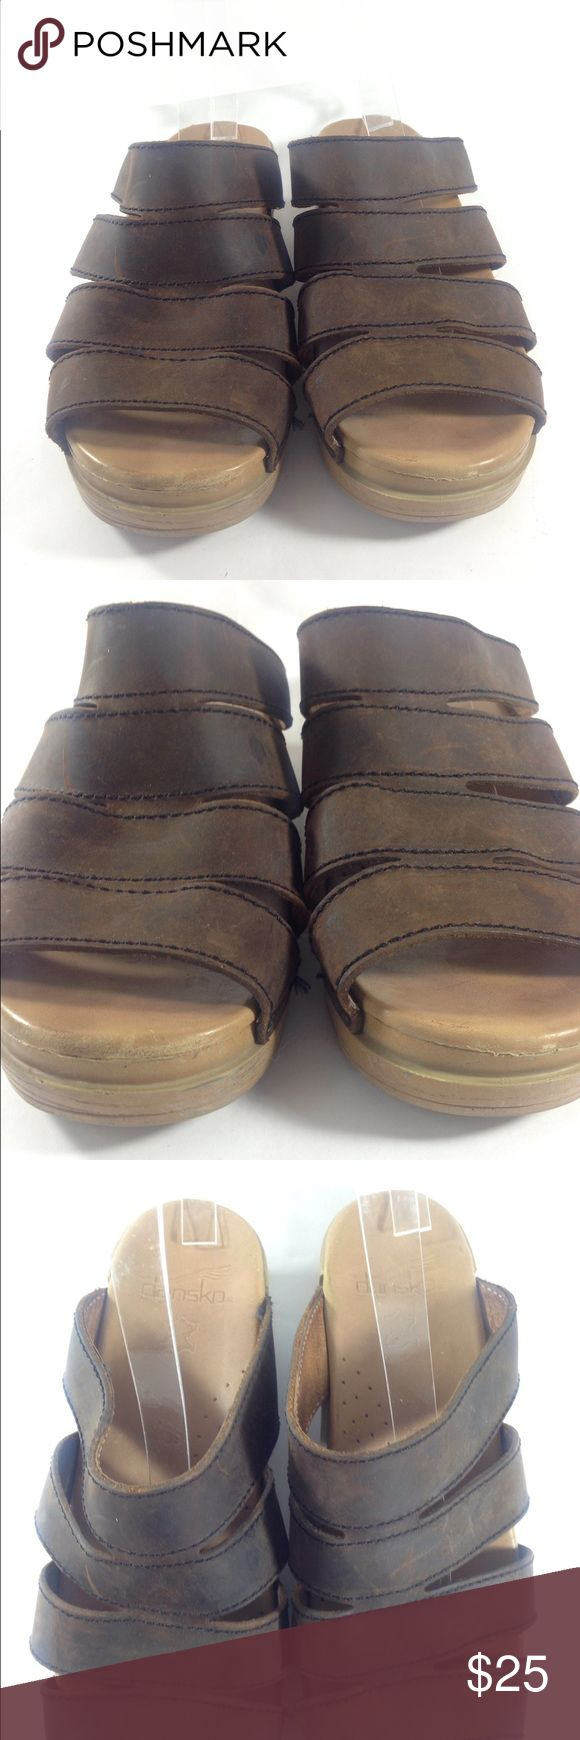 Dansko Brown Strappy Sandals Size 39 Up for sale is this classic pair of Dansko Slip On Sandals Women's US Size 9 Eur 39. A nice comfort basic for an evening BBQ this summer!   CONDITION: Good used condition. Some scuffing throughout. Dansko Shoes Sandals